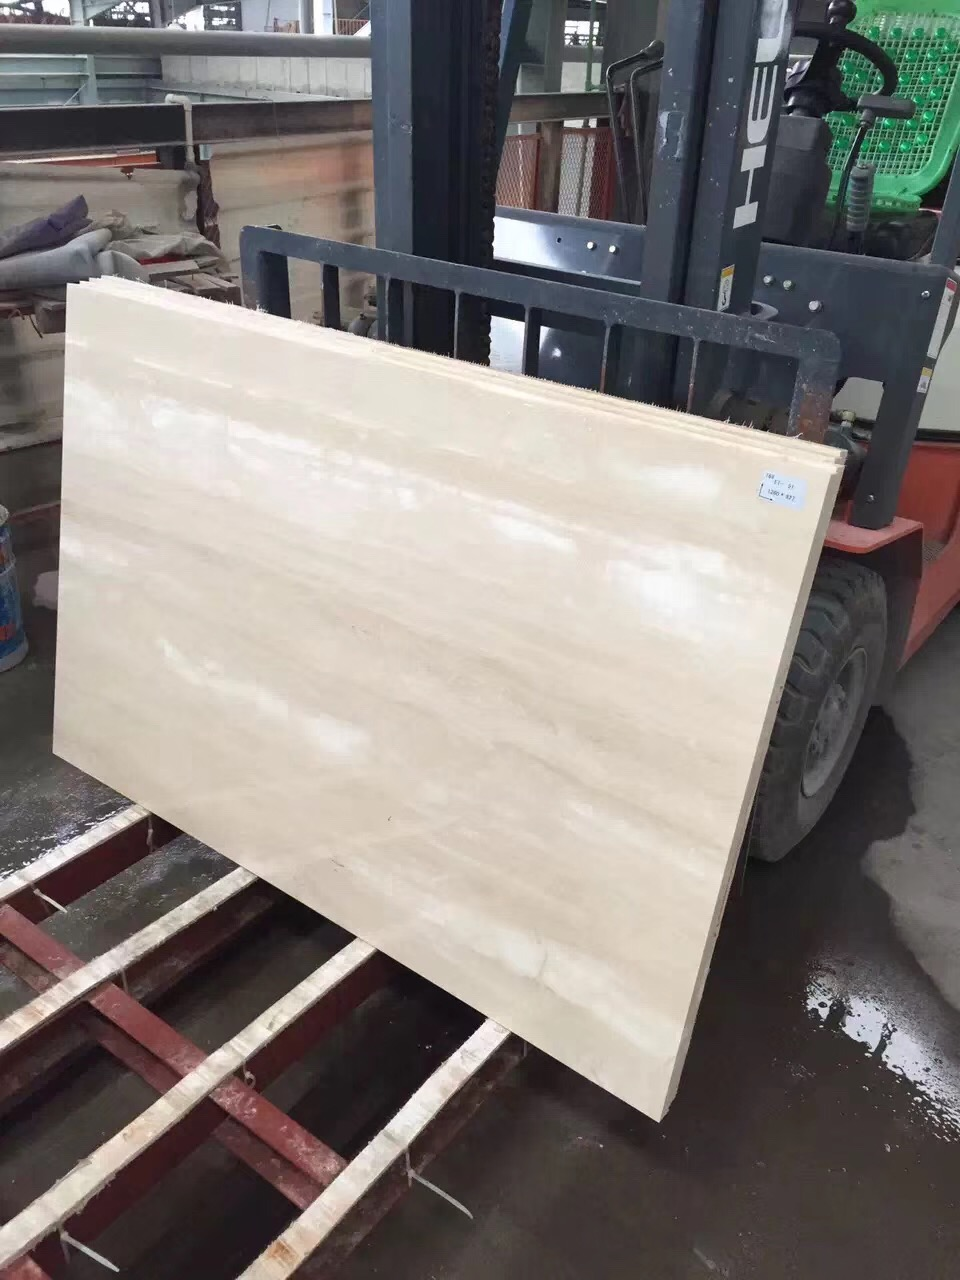 travertine,travertine tile,travertine floors,travertine pavers,travertine floor tile,travertine backsplash,travertine stone,silver travertine,travertine marble